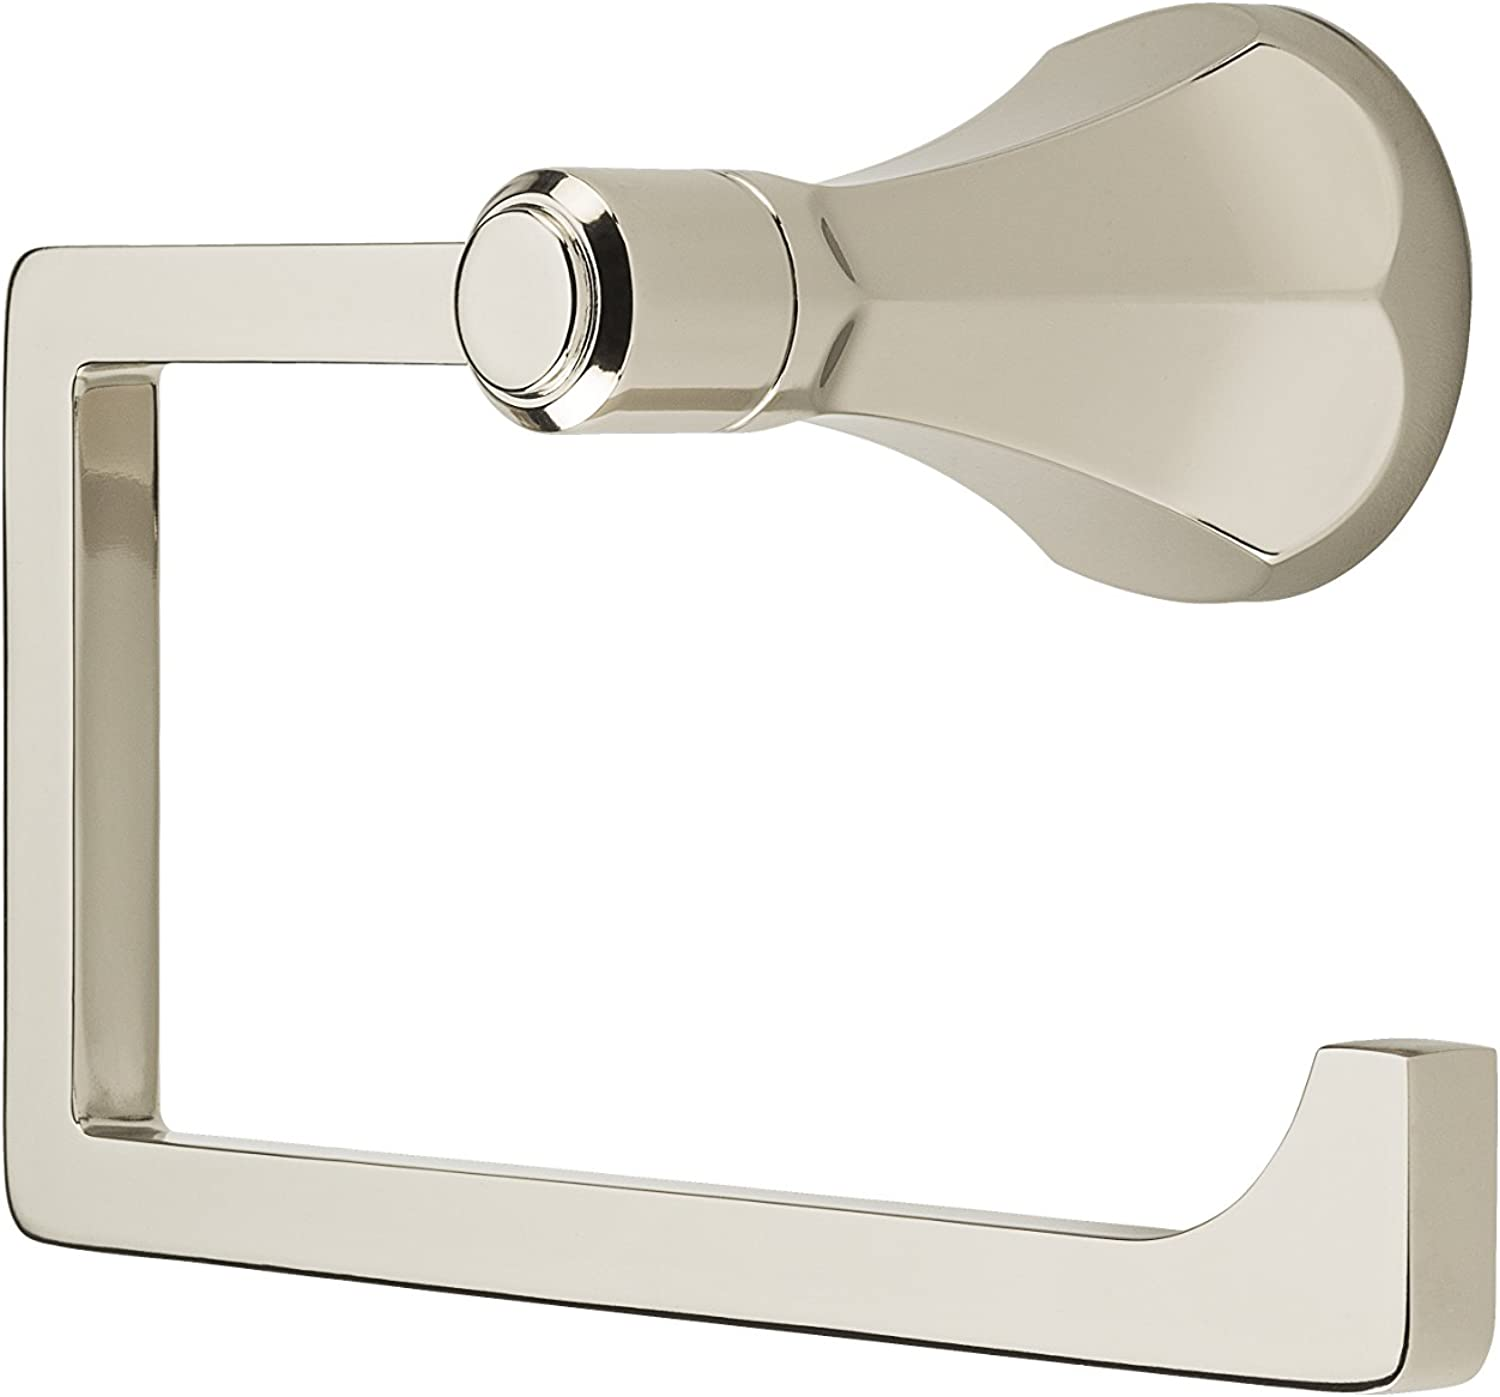 Pfister Arterra Towel Ring, Polished Nickel